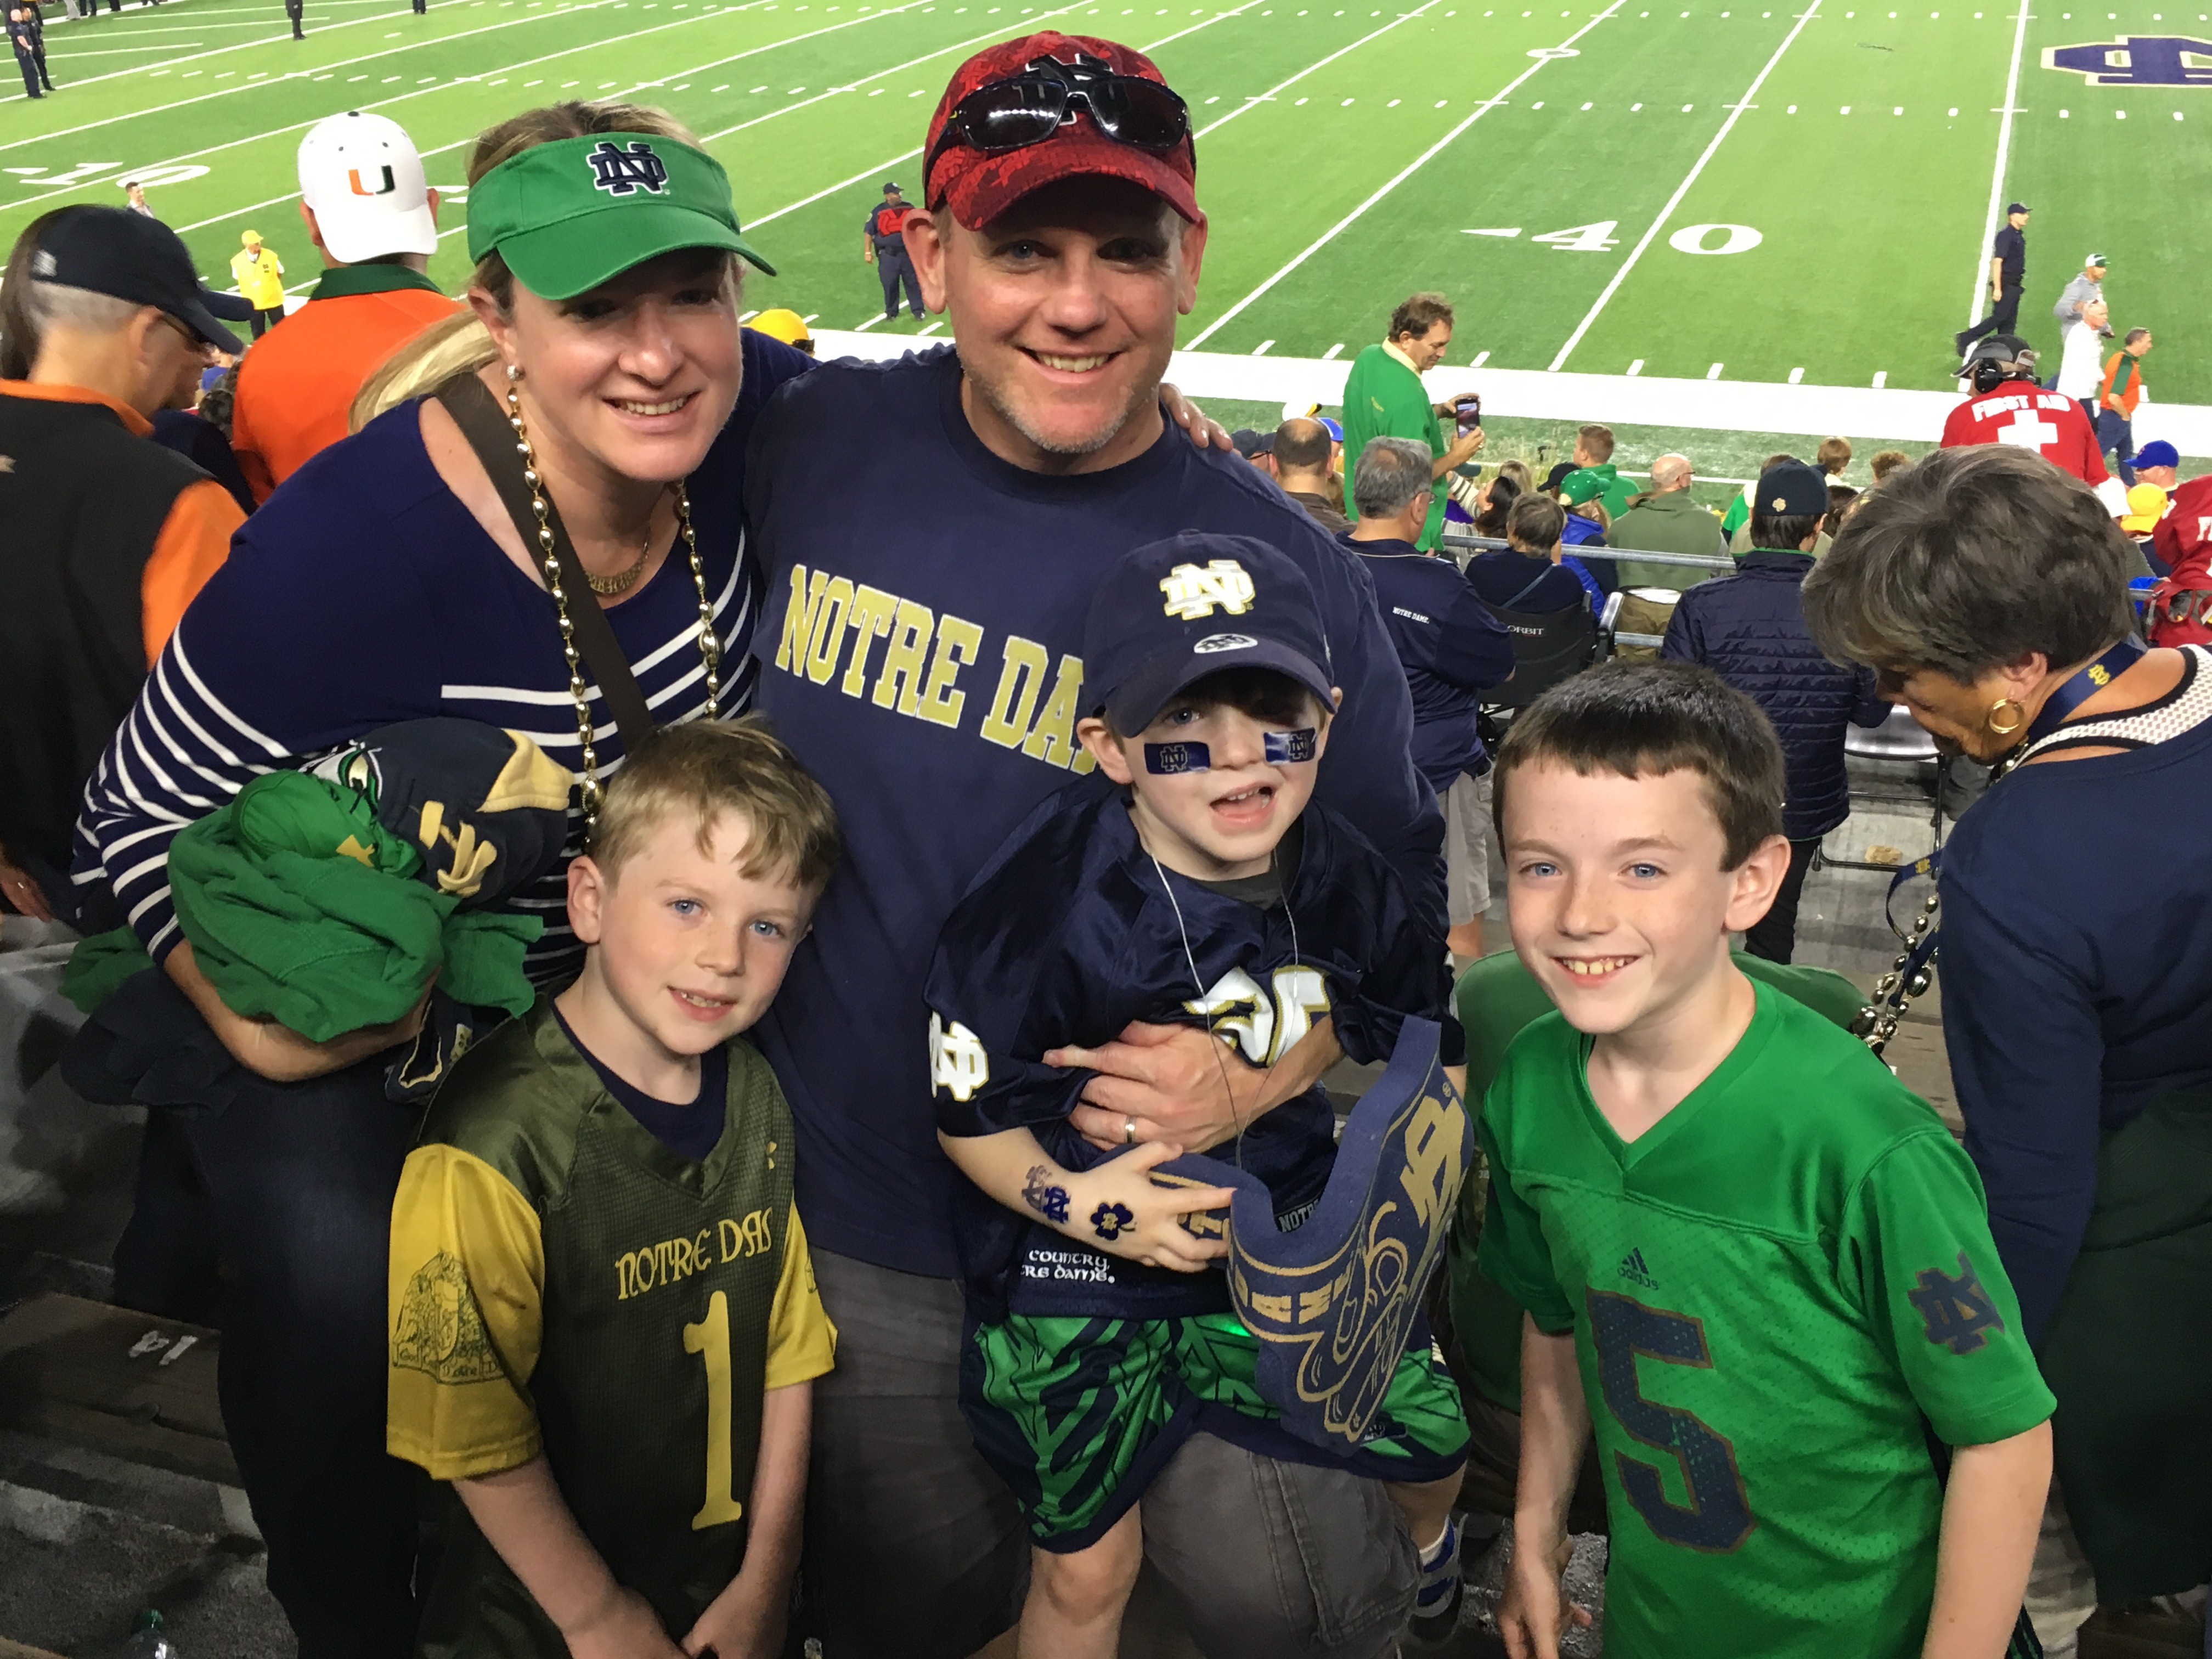 1. Notre Dame - Young family on field